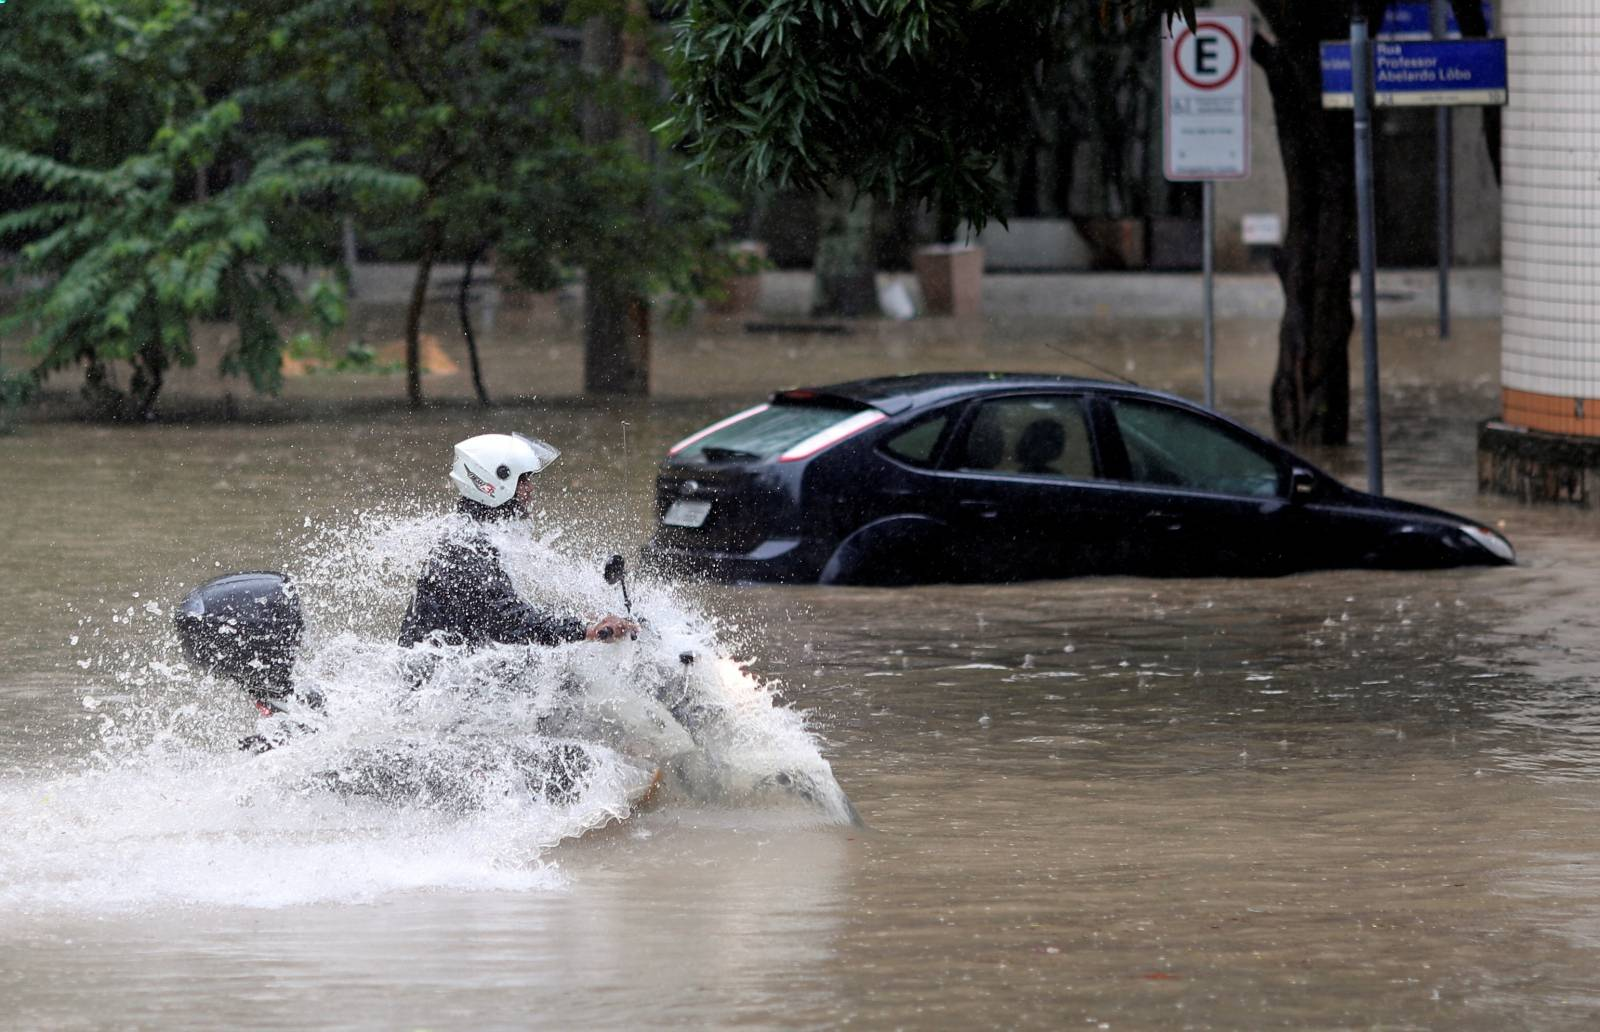 A man drives his motorbike during floods after heavy rains, in Humaita neighbourhood, Rio de Janeiro